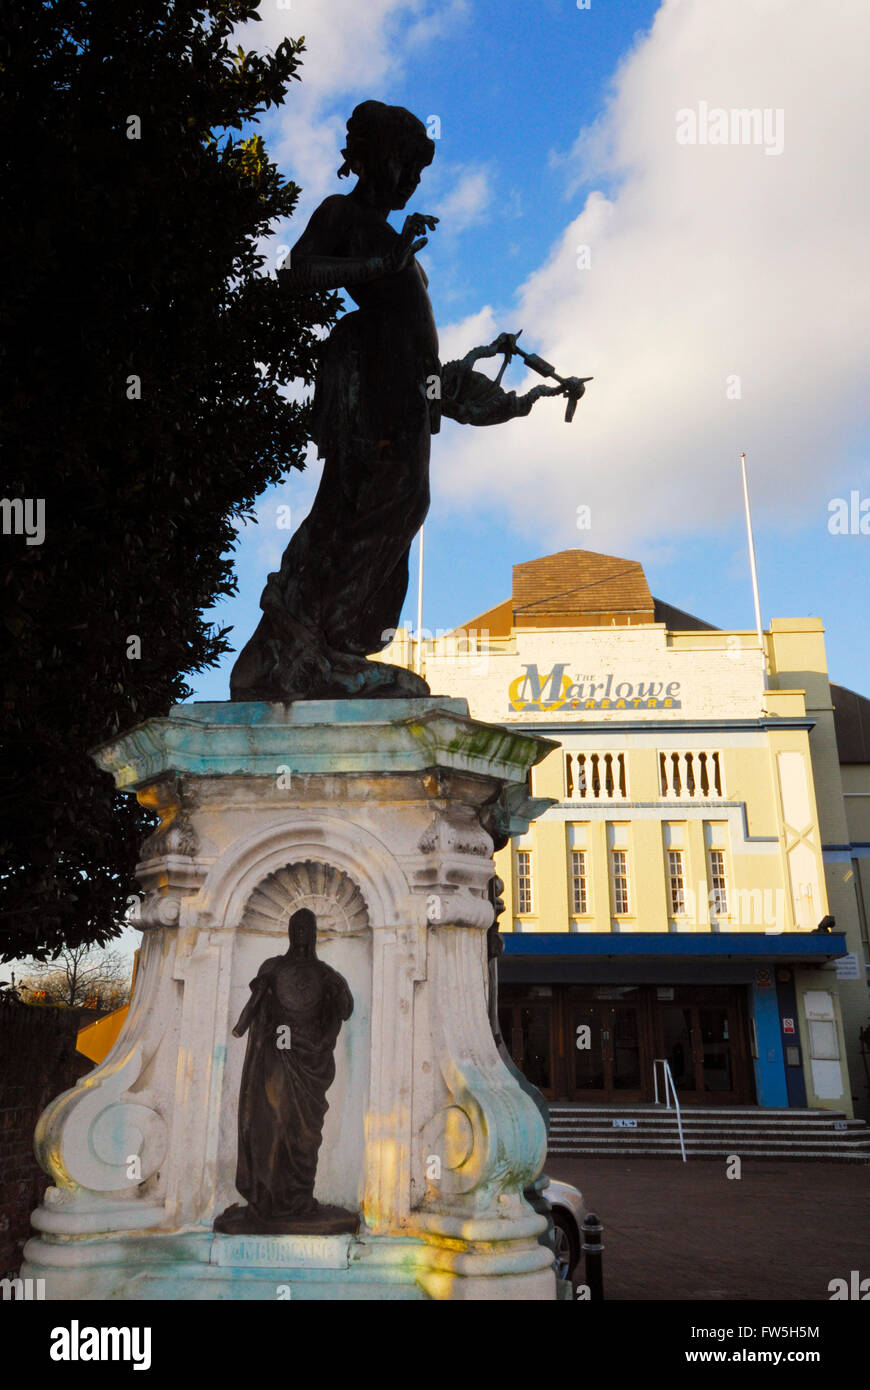 Canterbury, Kent, Marlowe Theatre, exterior, with statue to Christopher Marlowe, playwright, 1564-1593 born Canterbury, - Stock Image